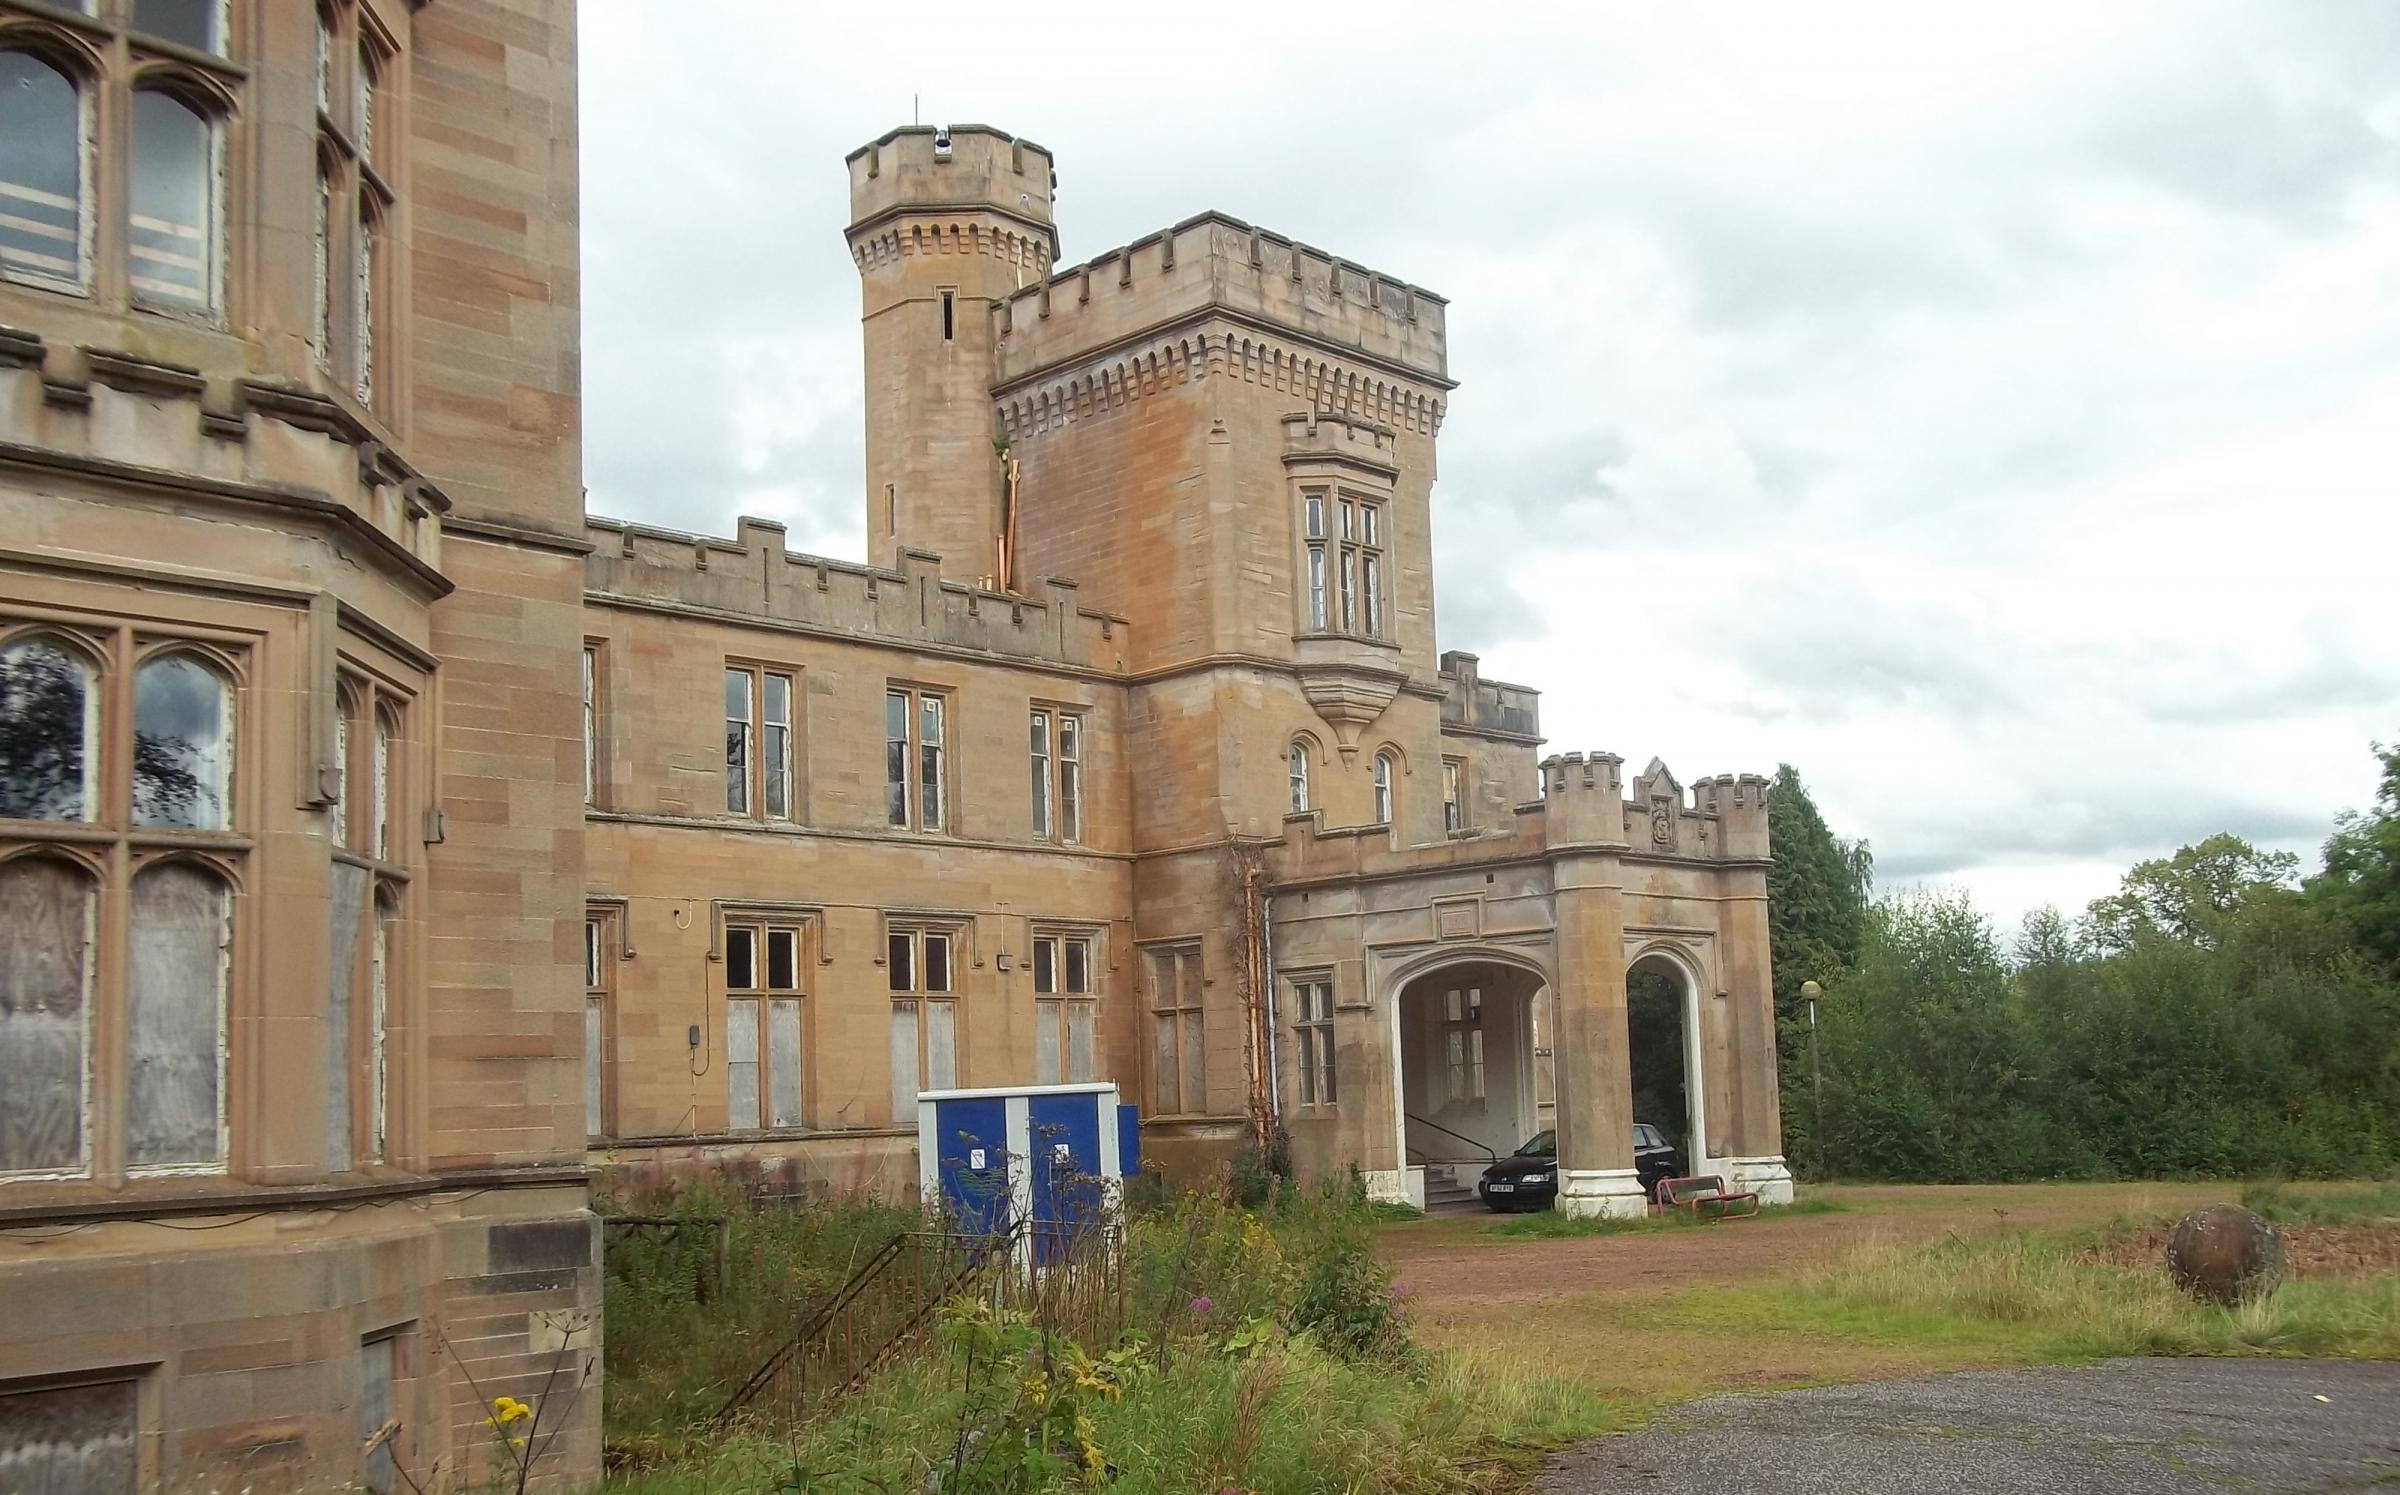 Birkwood Castle is a 17th-century Gothic mansion